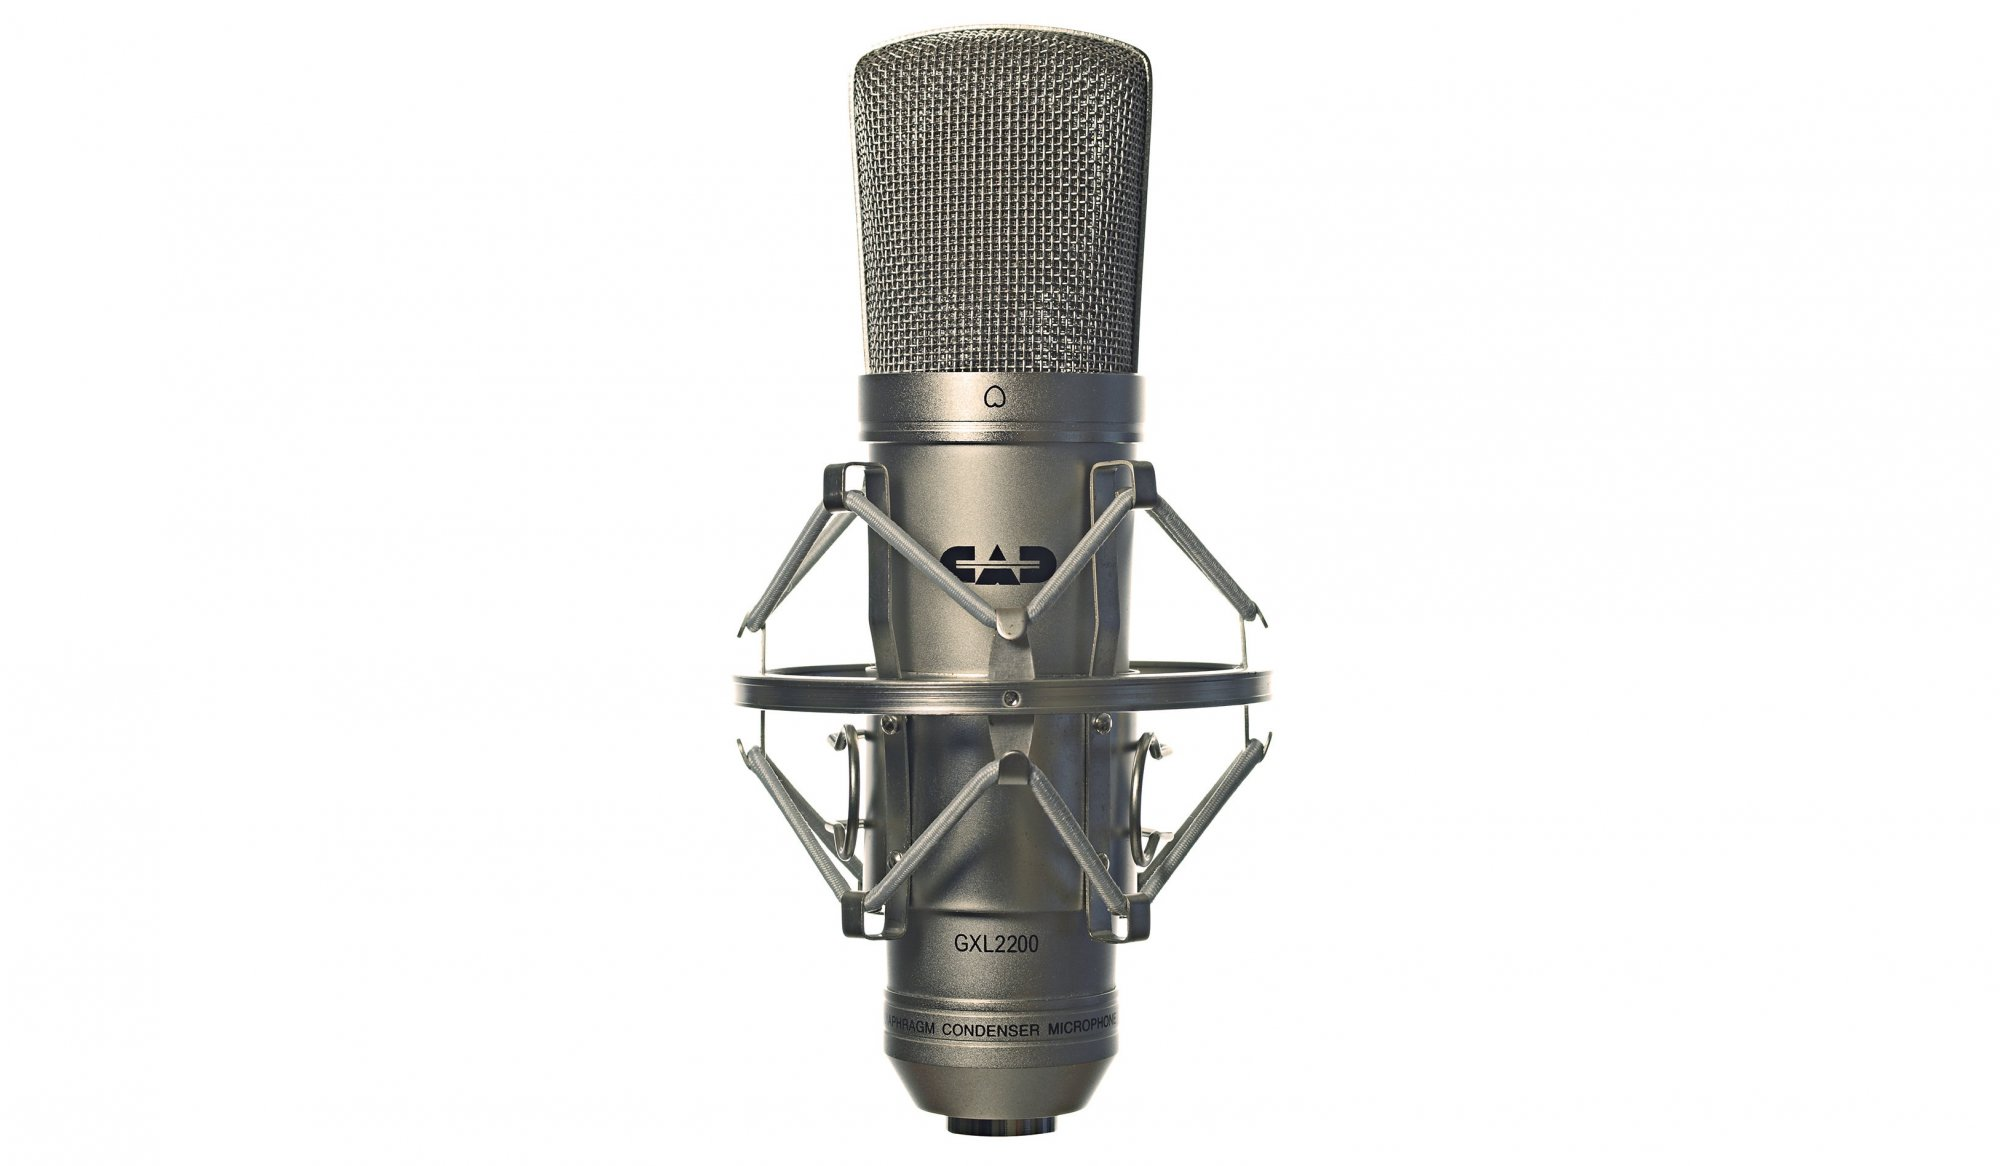 CAD GXL2200 Microphone